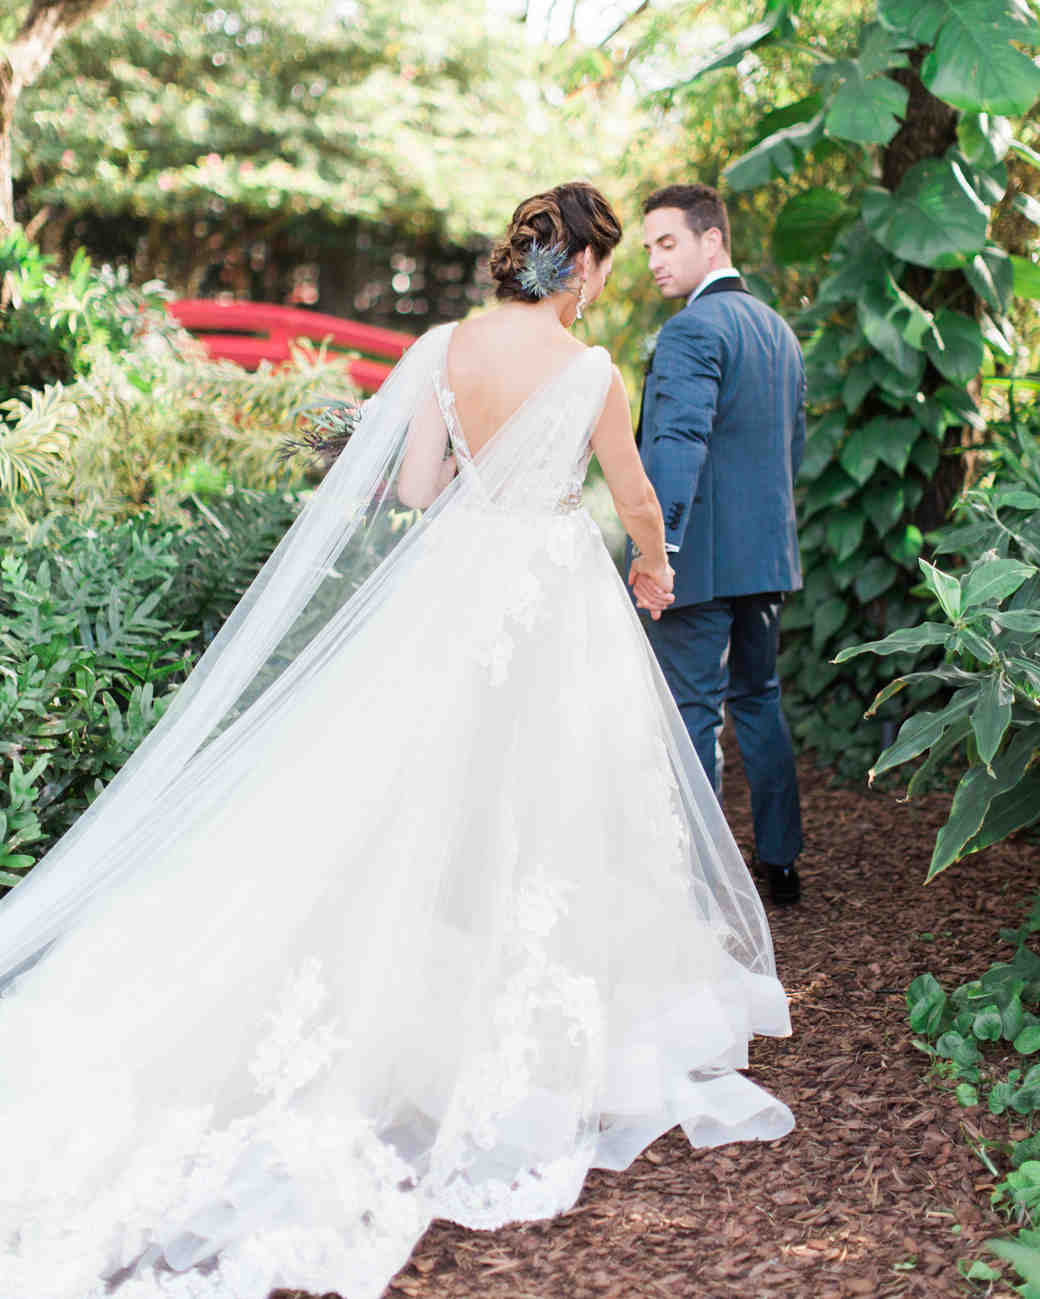 bride and groom walking away surrounded by greenery